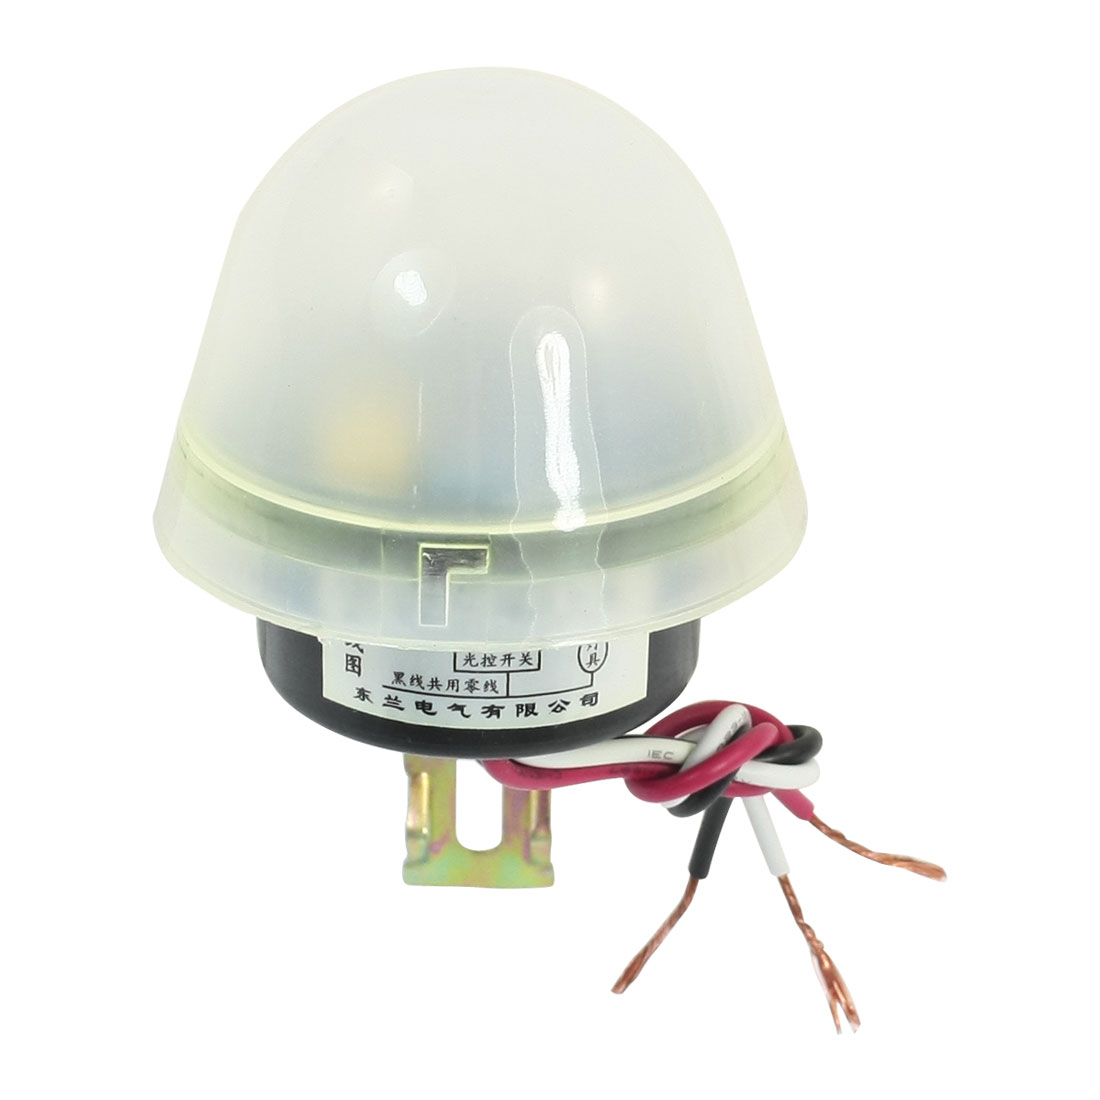 AC 220V 10A 3-Wire Connect White Waterproof Cap Automatic On Off Light Control Sensor Switch for Street Lamp